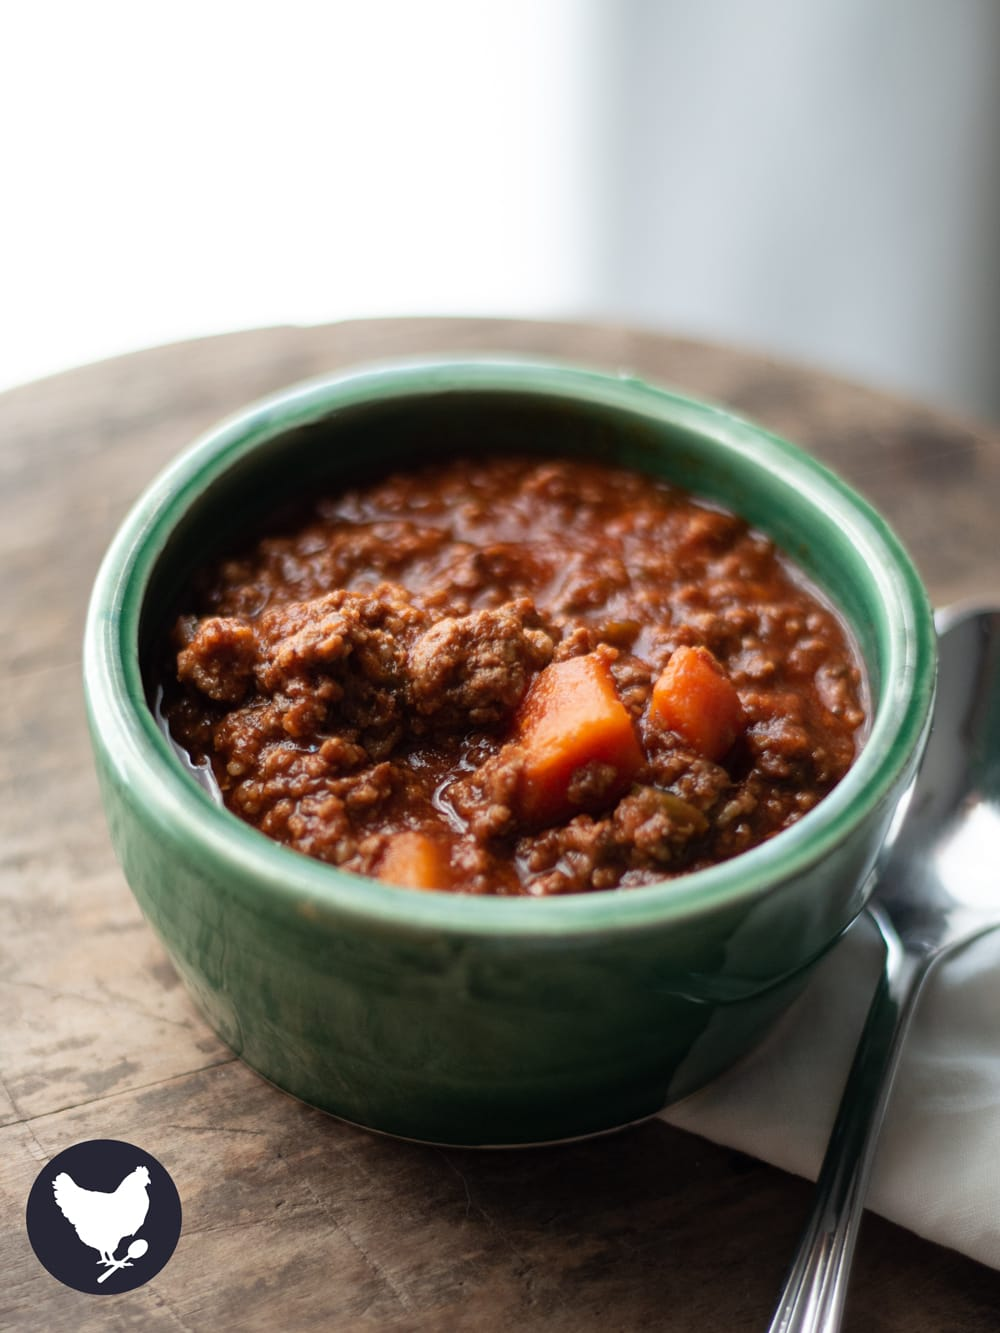 Paleo Chili, the perfect meal for chilly days. Made in your Instant Pot with basic ingredients, this is a low-carb, hearty and nutritious meal.